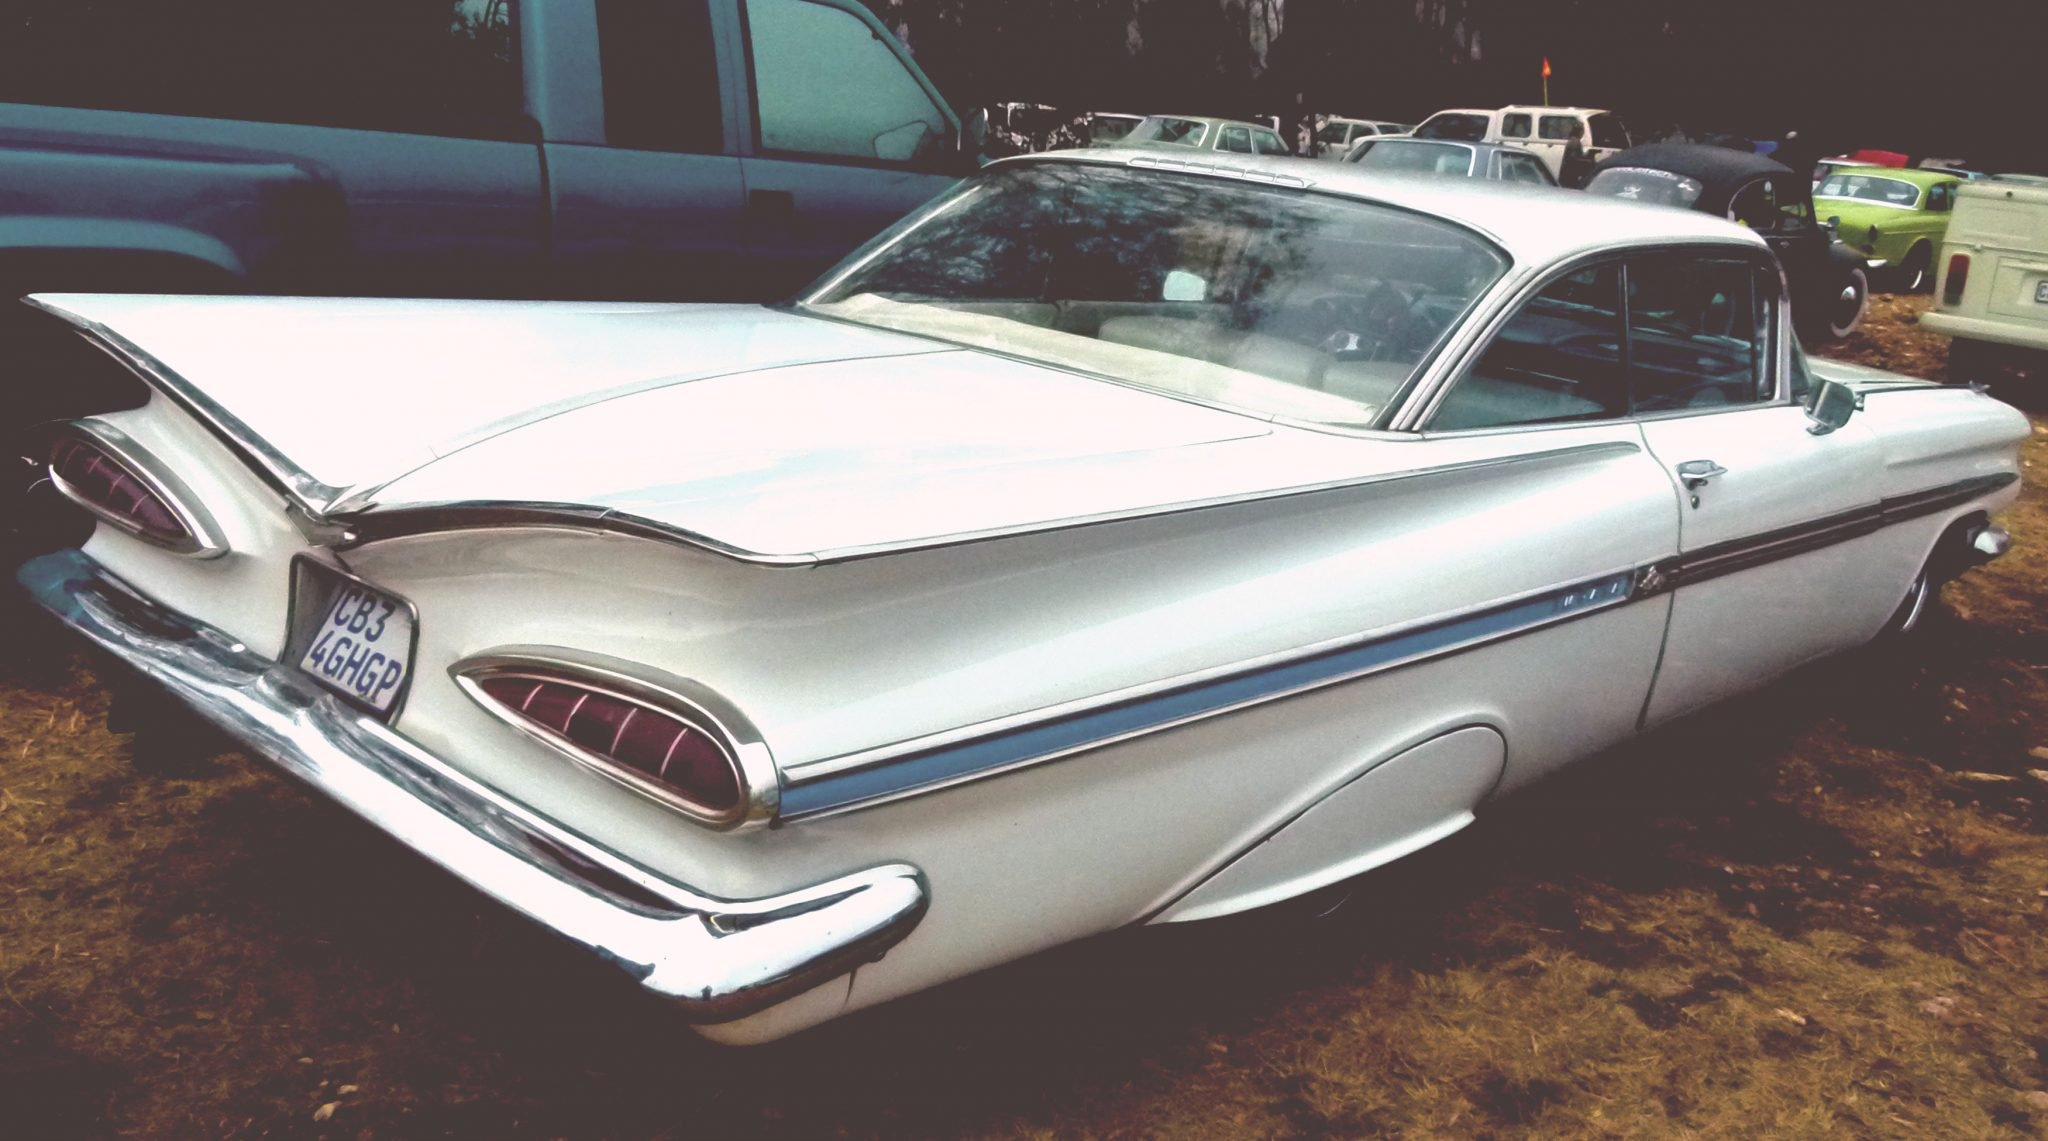 By-1959-tailfins-had-reached-their-zenith-as-exhibited-by-this-1959-Chevrolet-coupe.jpg